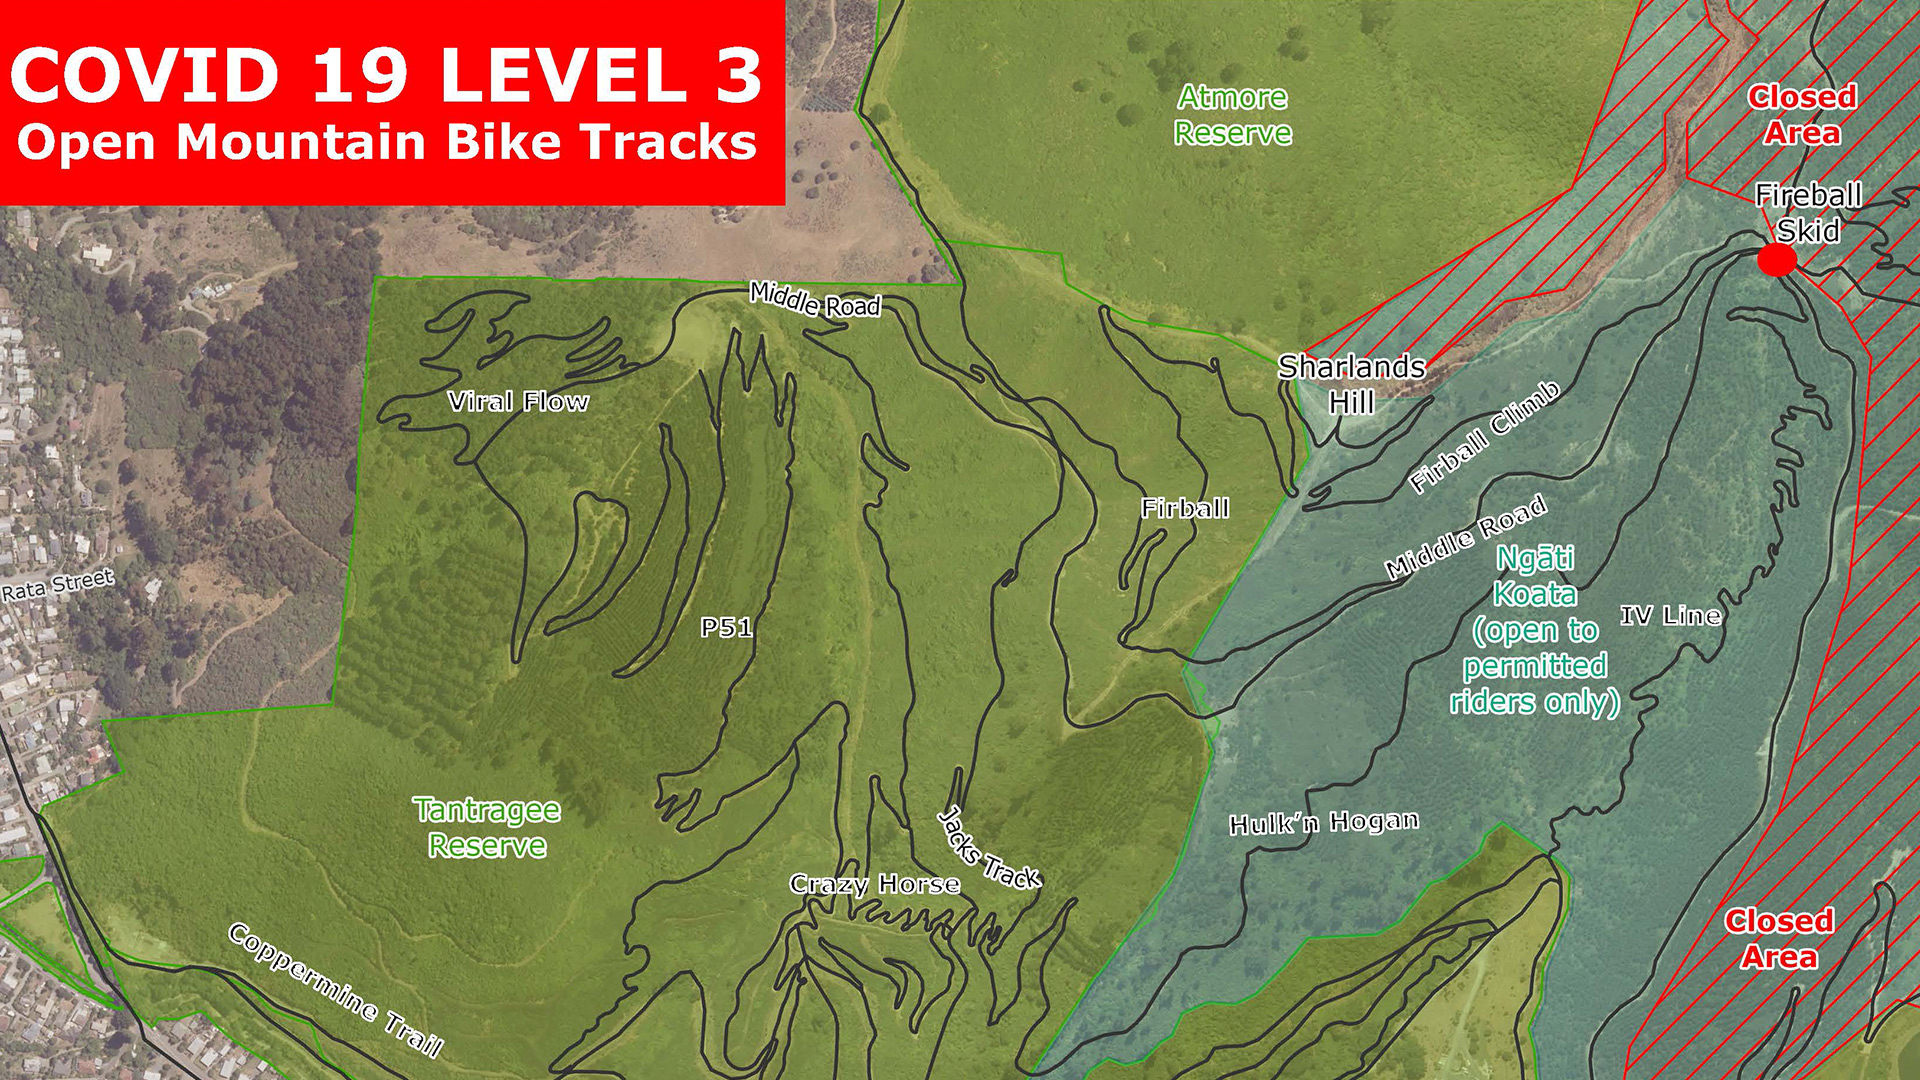 Some trails in Nelson will be open for mountain biking from midday on  Tuesday 28 April